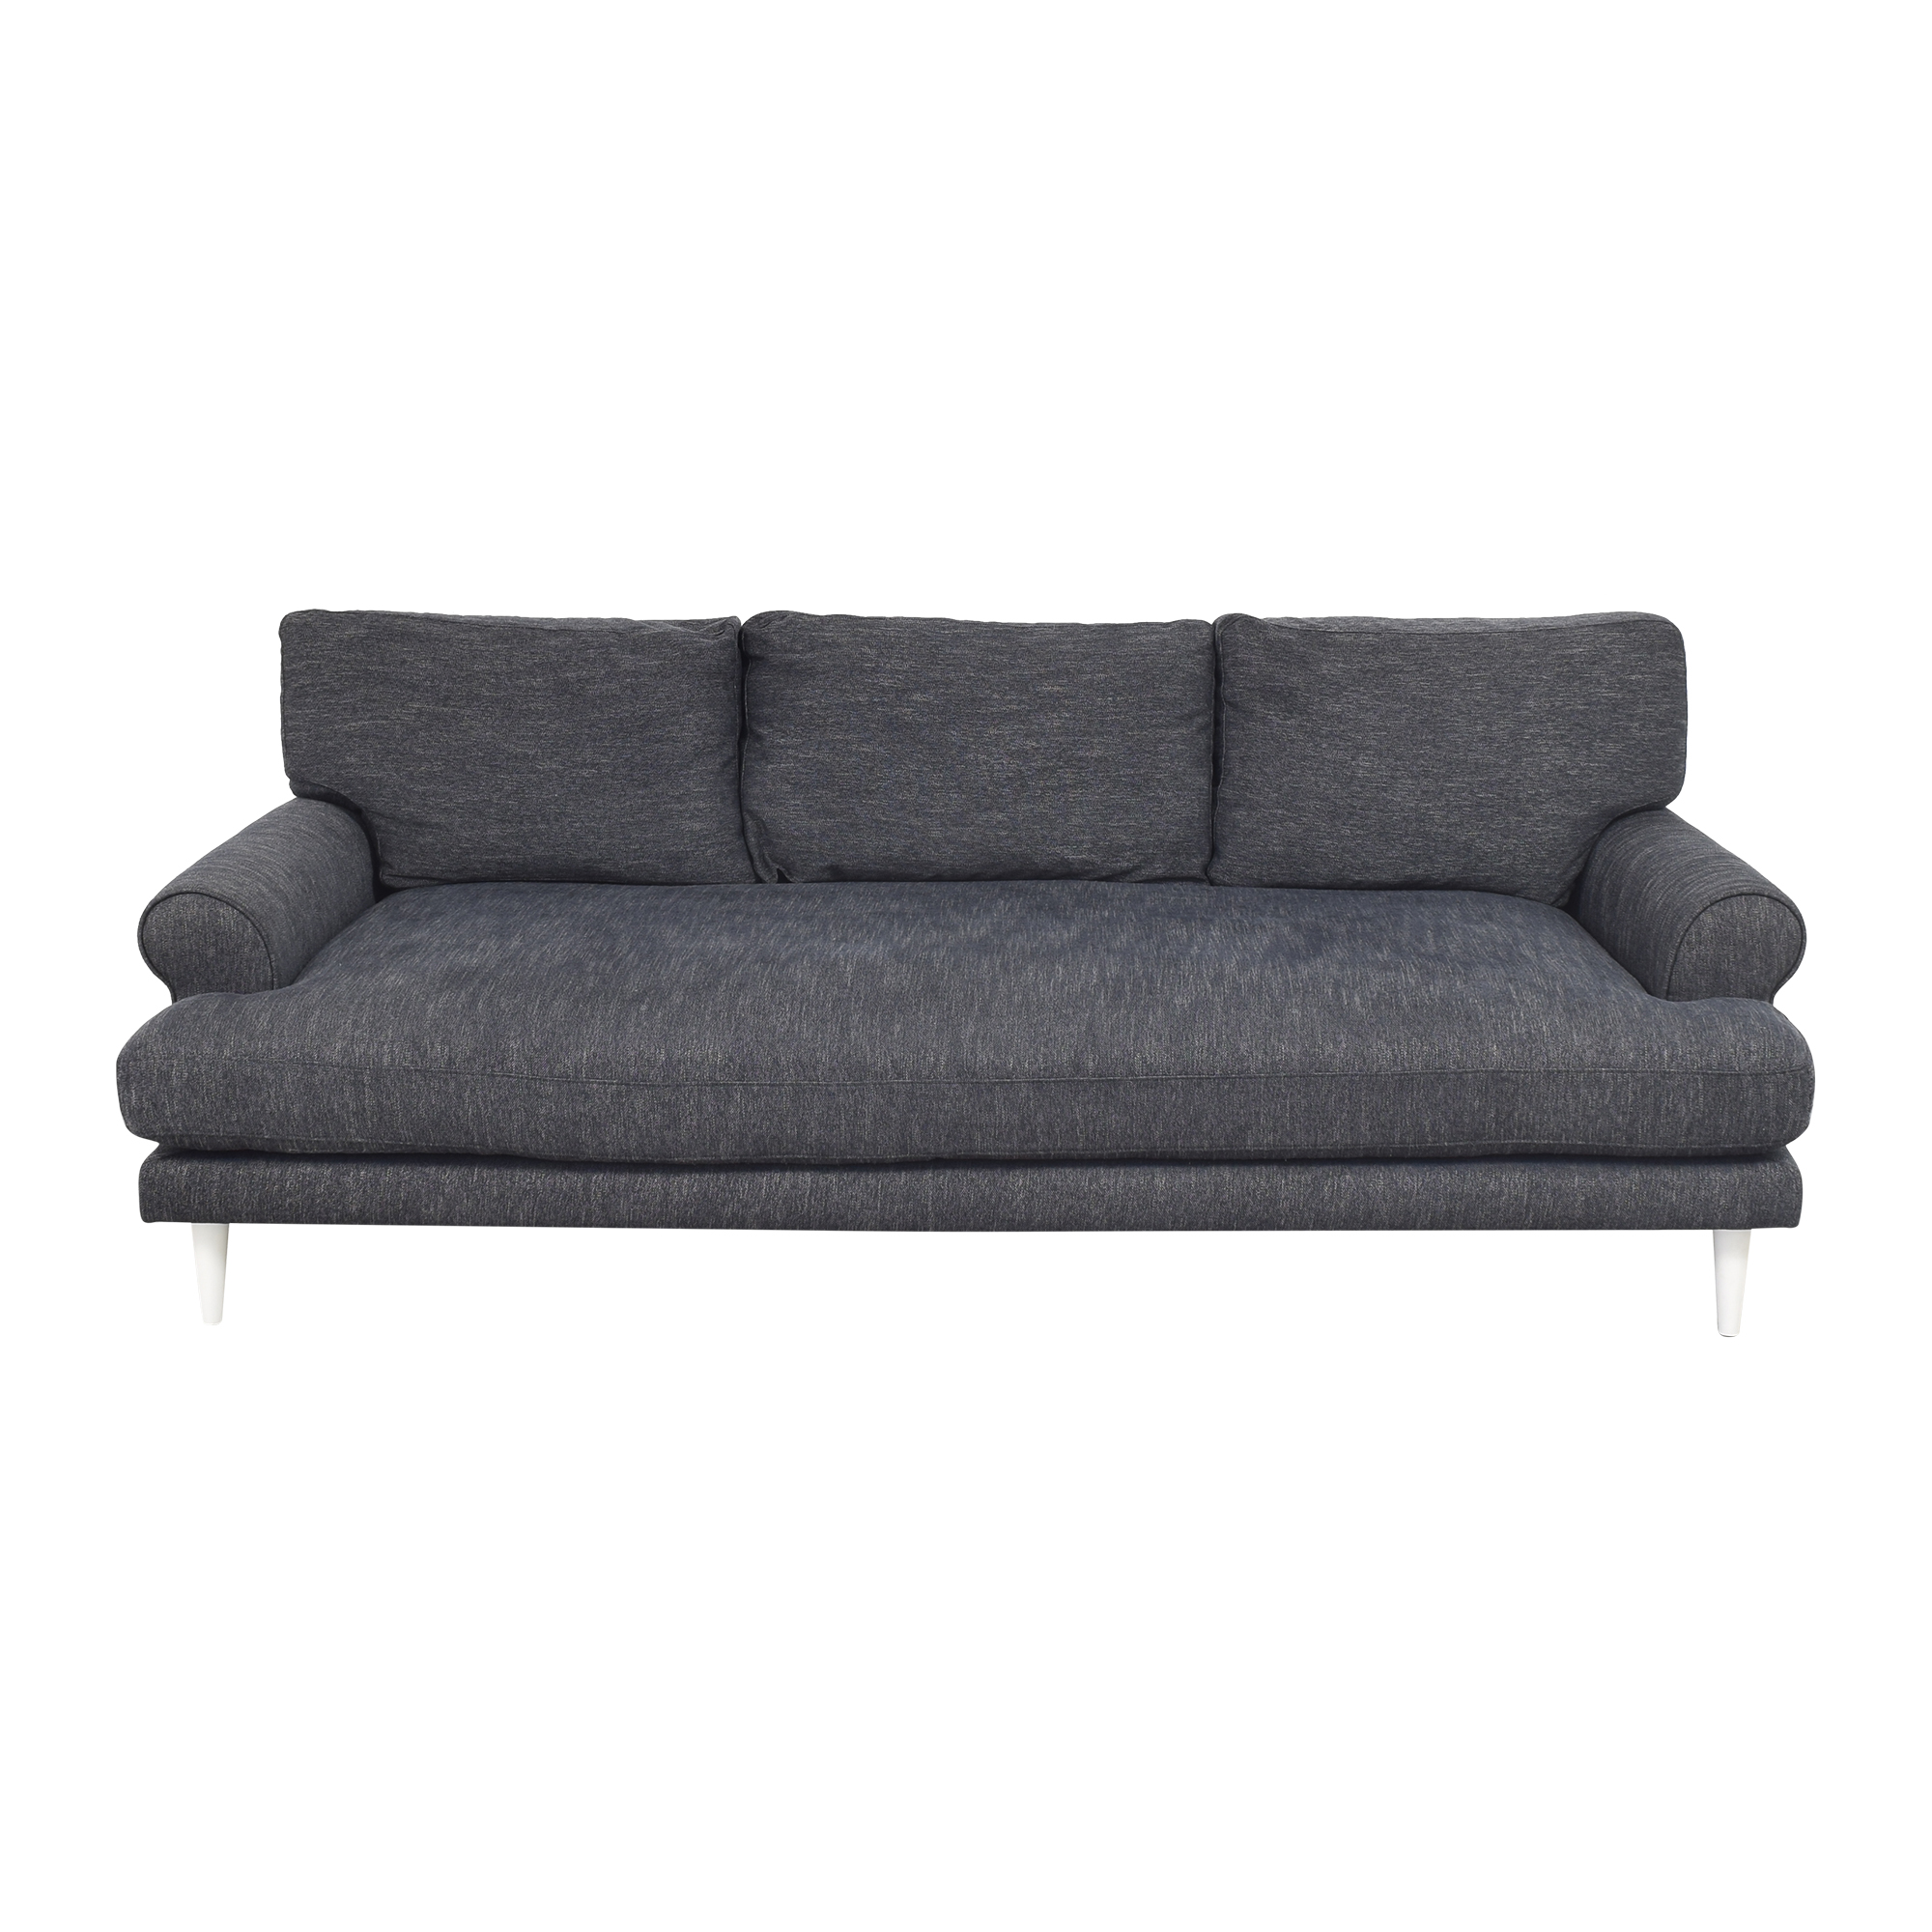 Interior Define Interior Define Maxwell Bench Cushion Sofa ct